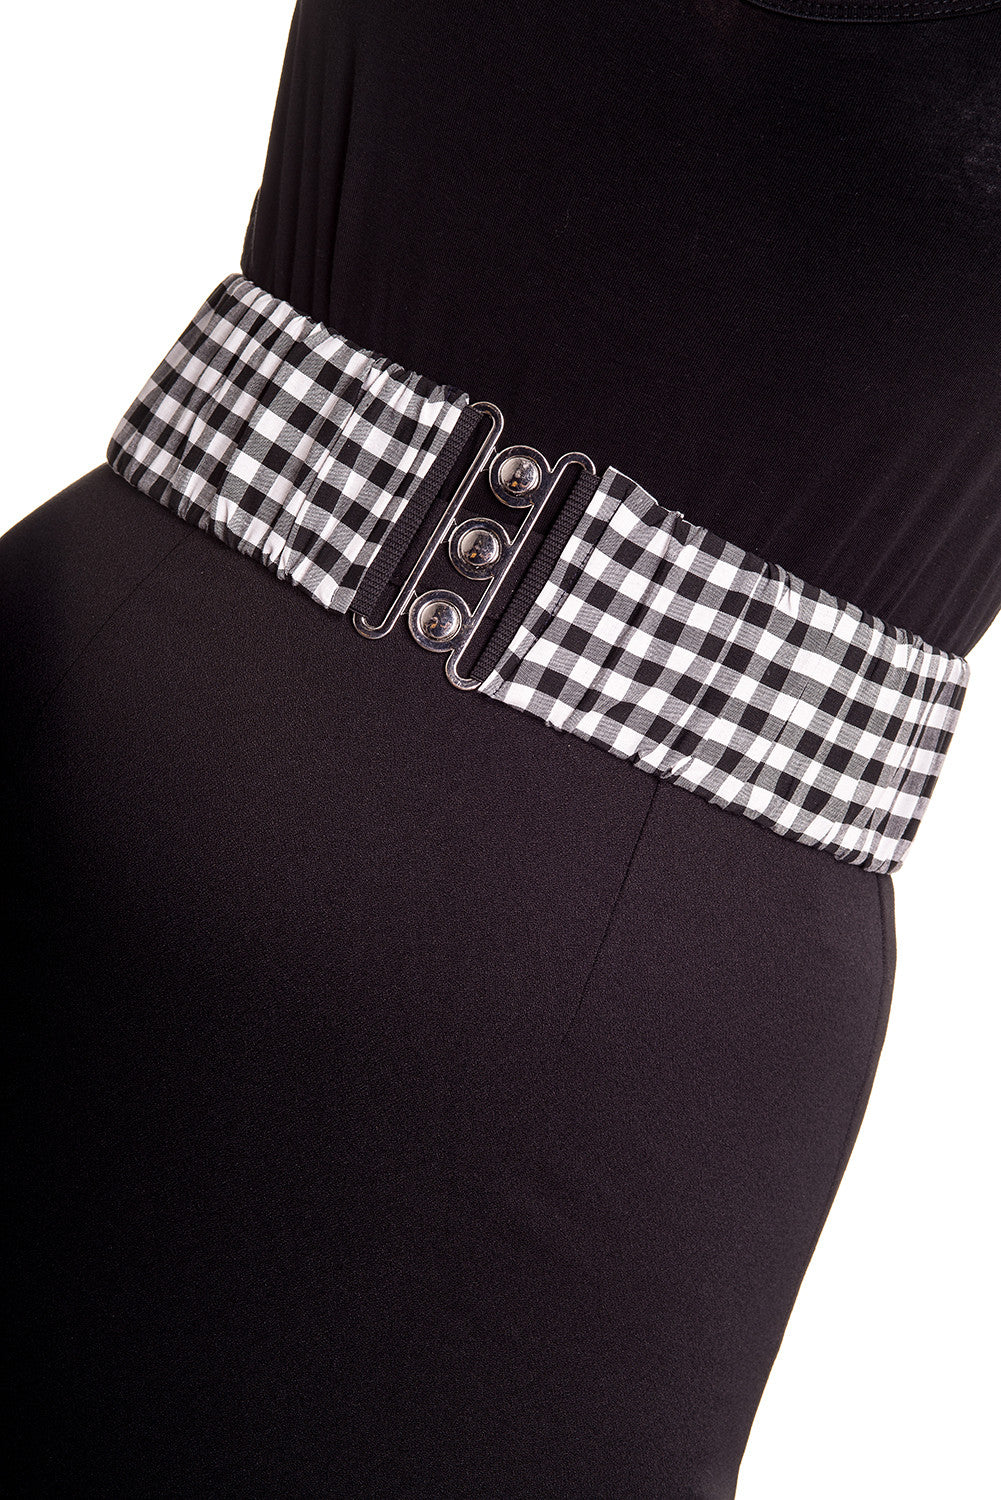 Gingham Belt - Natasha Marie Clothing